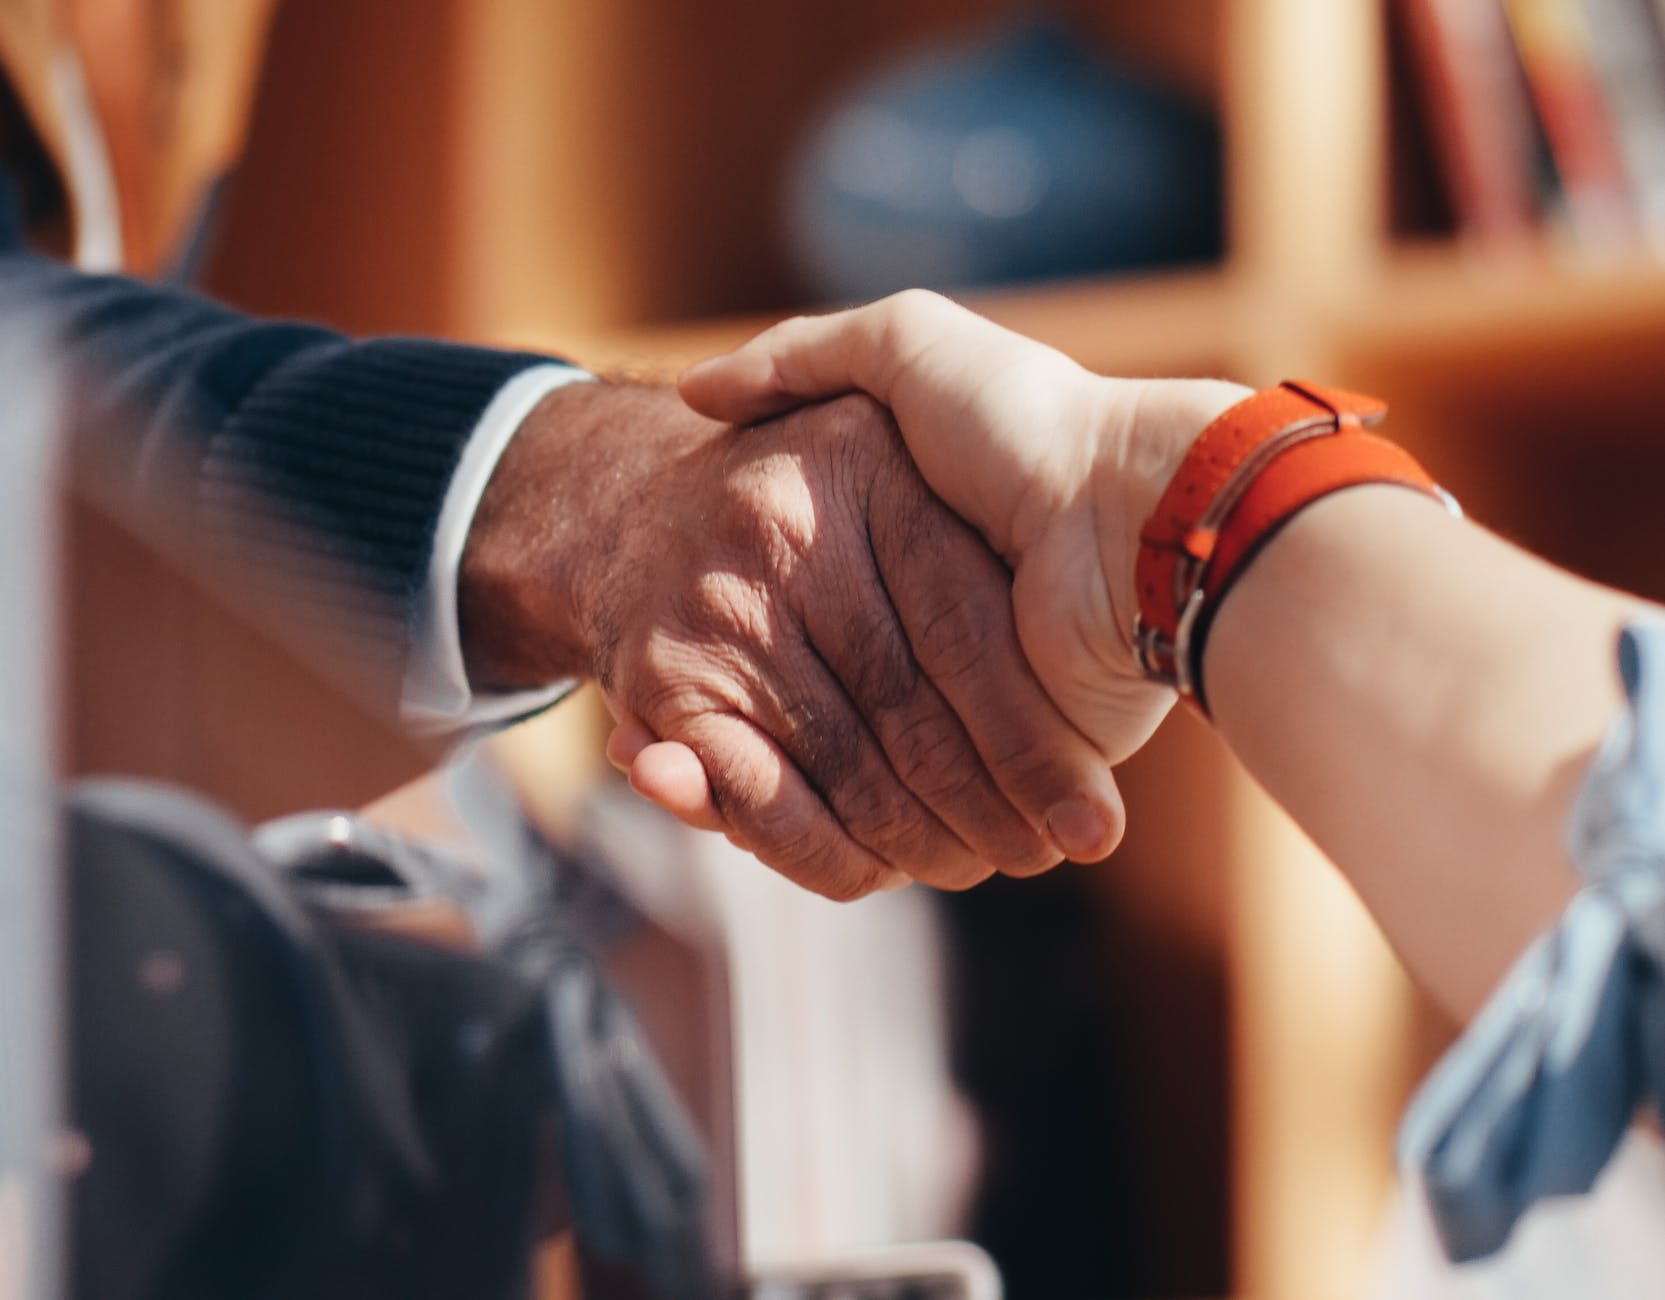 a man and a women shaking hands, one in a business suit, one looking more informal. just a close up of the hands shaking